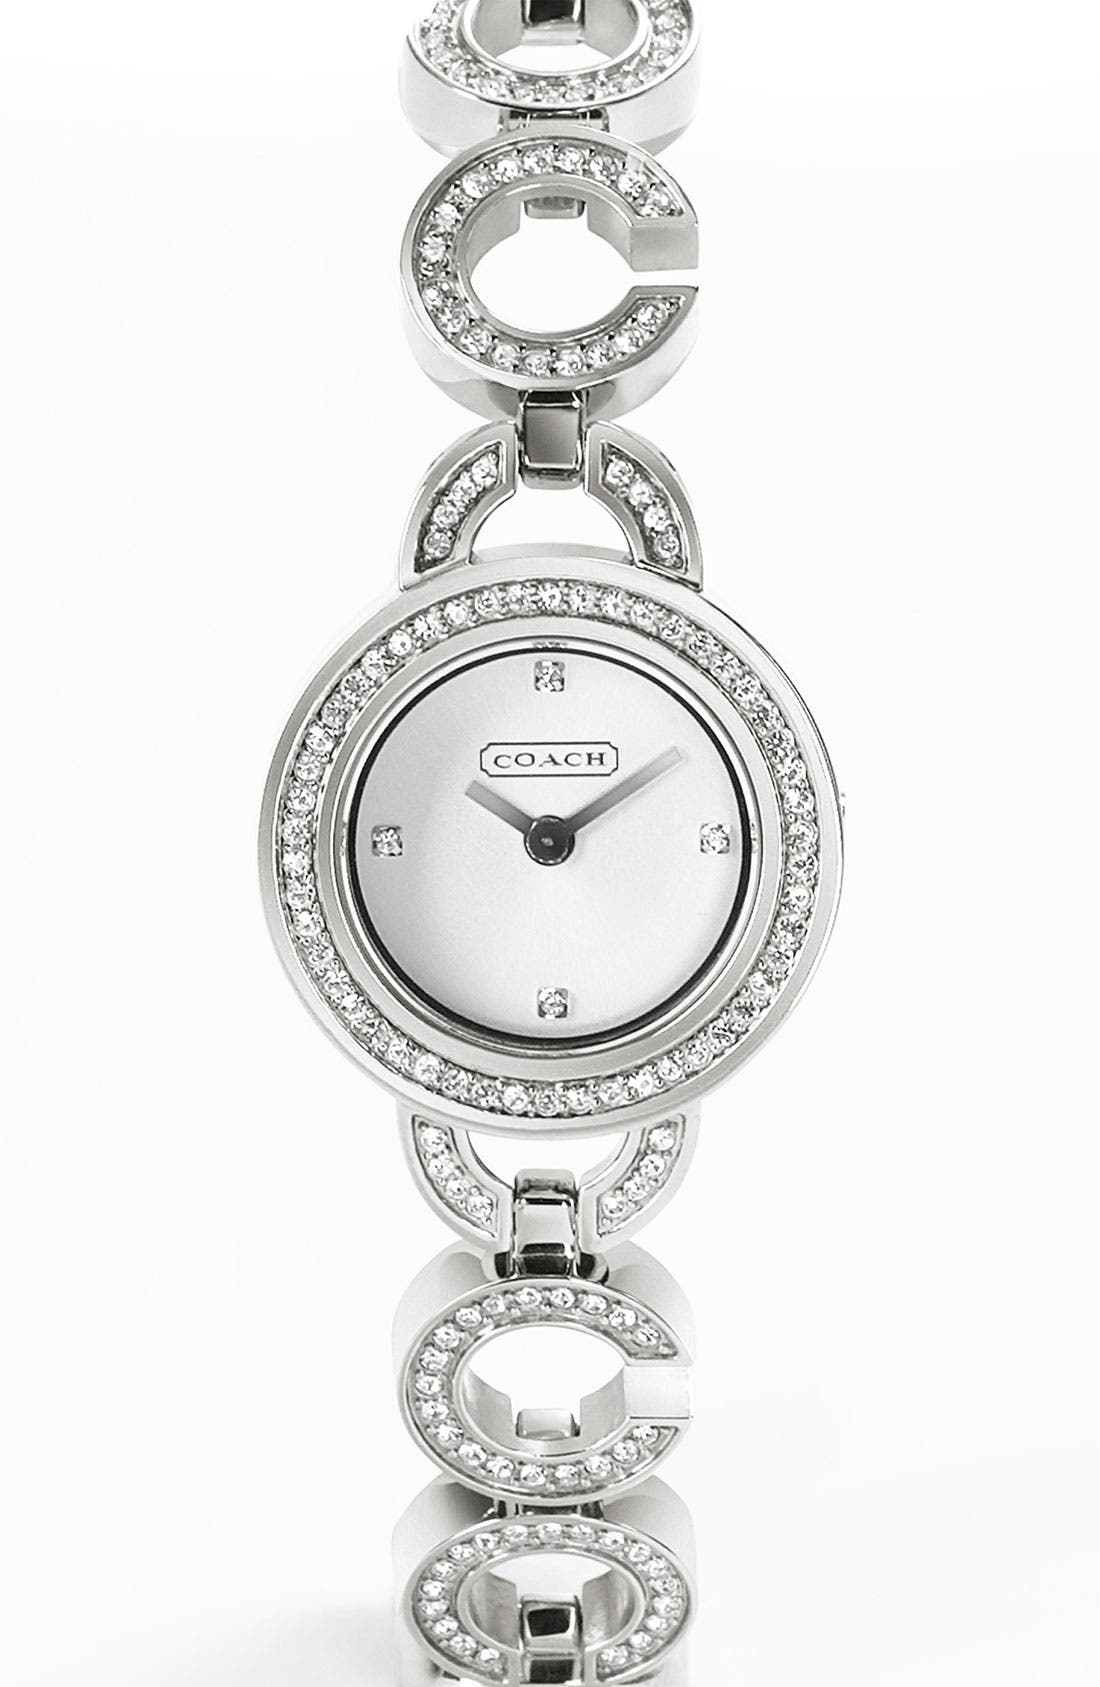 Main Image - COACH 'Kristy' Bracelet Watch